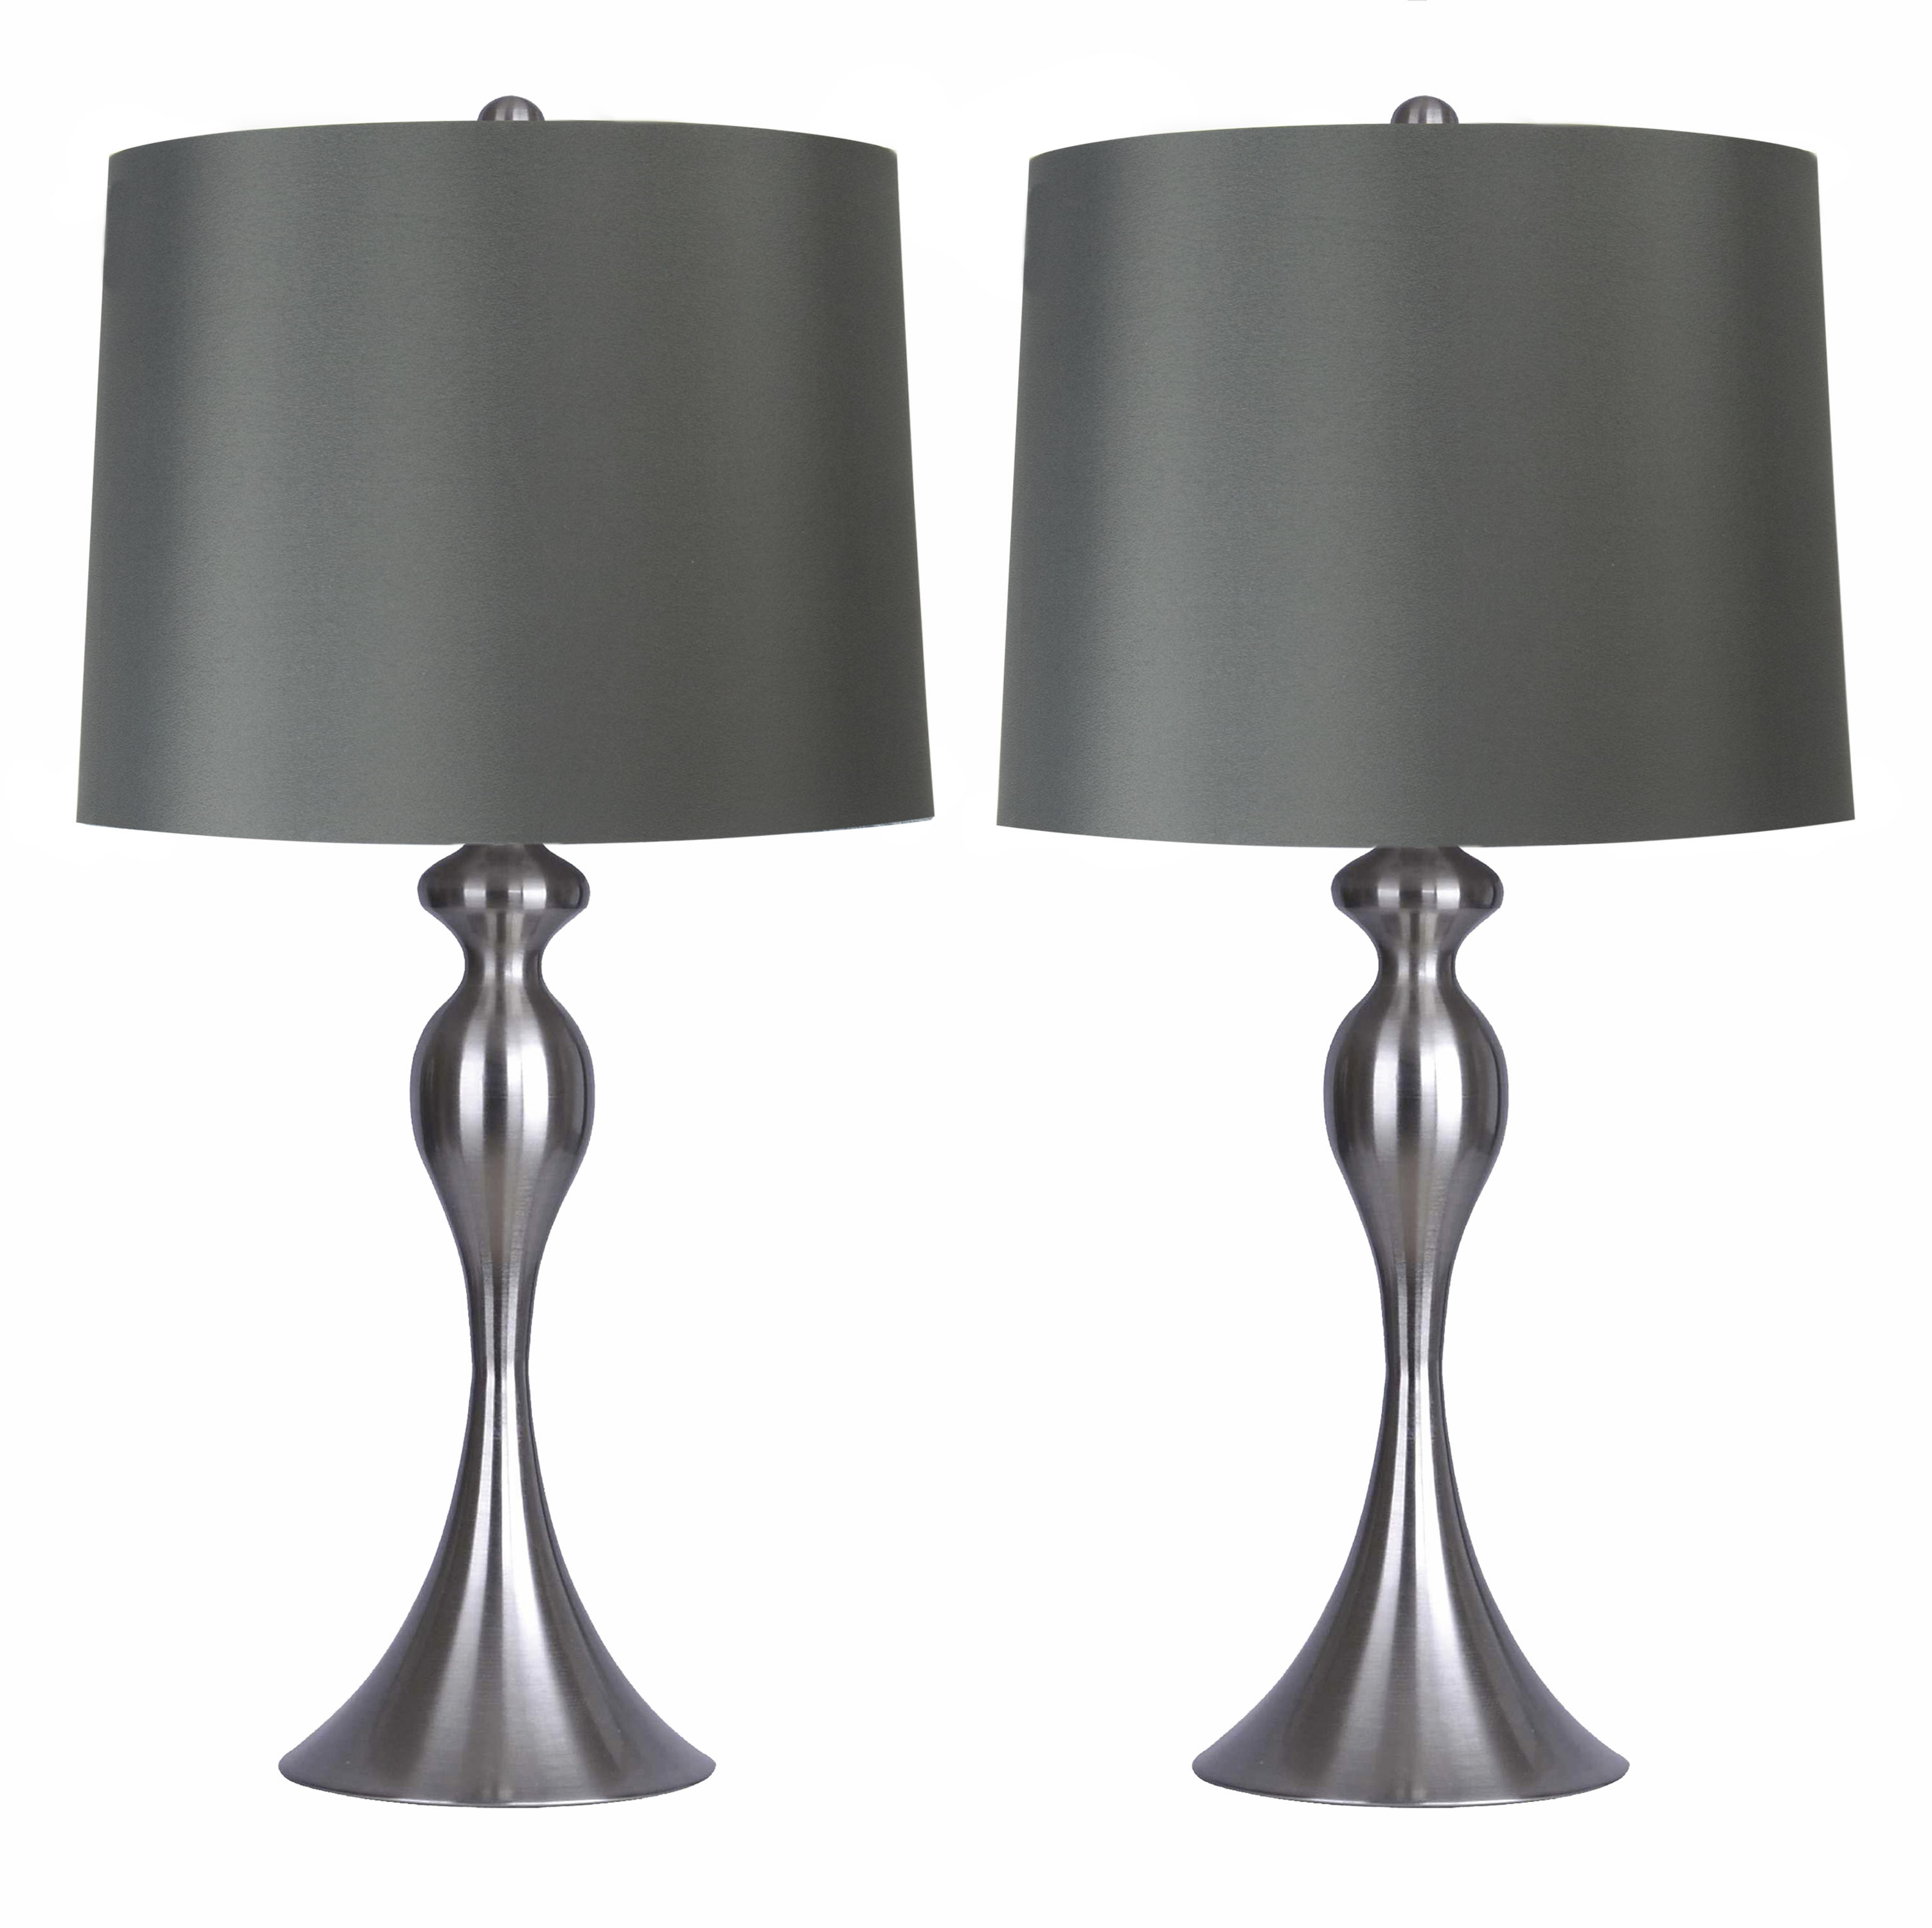 "Grandview Gallery Table Lamps with Dark Grey Lamp Shade, Set of 2 - Brushed Nickel Body with Linen Shade, 26.5"" for Bedrooms, Dressers, Buffets and More"